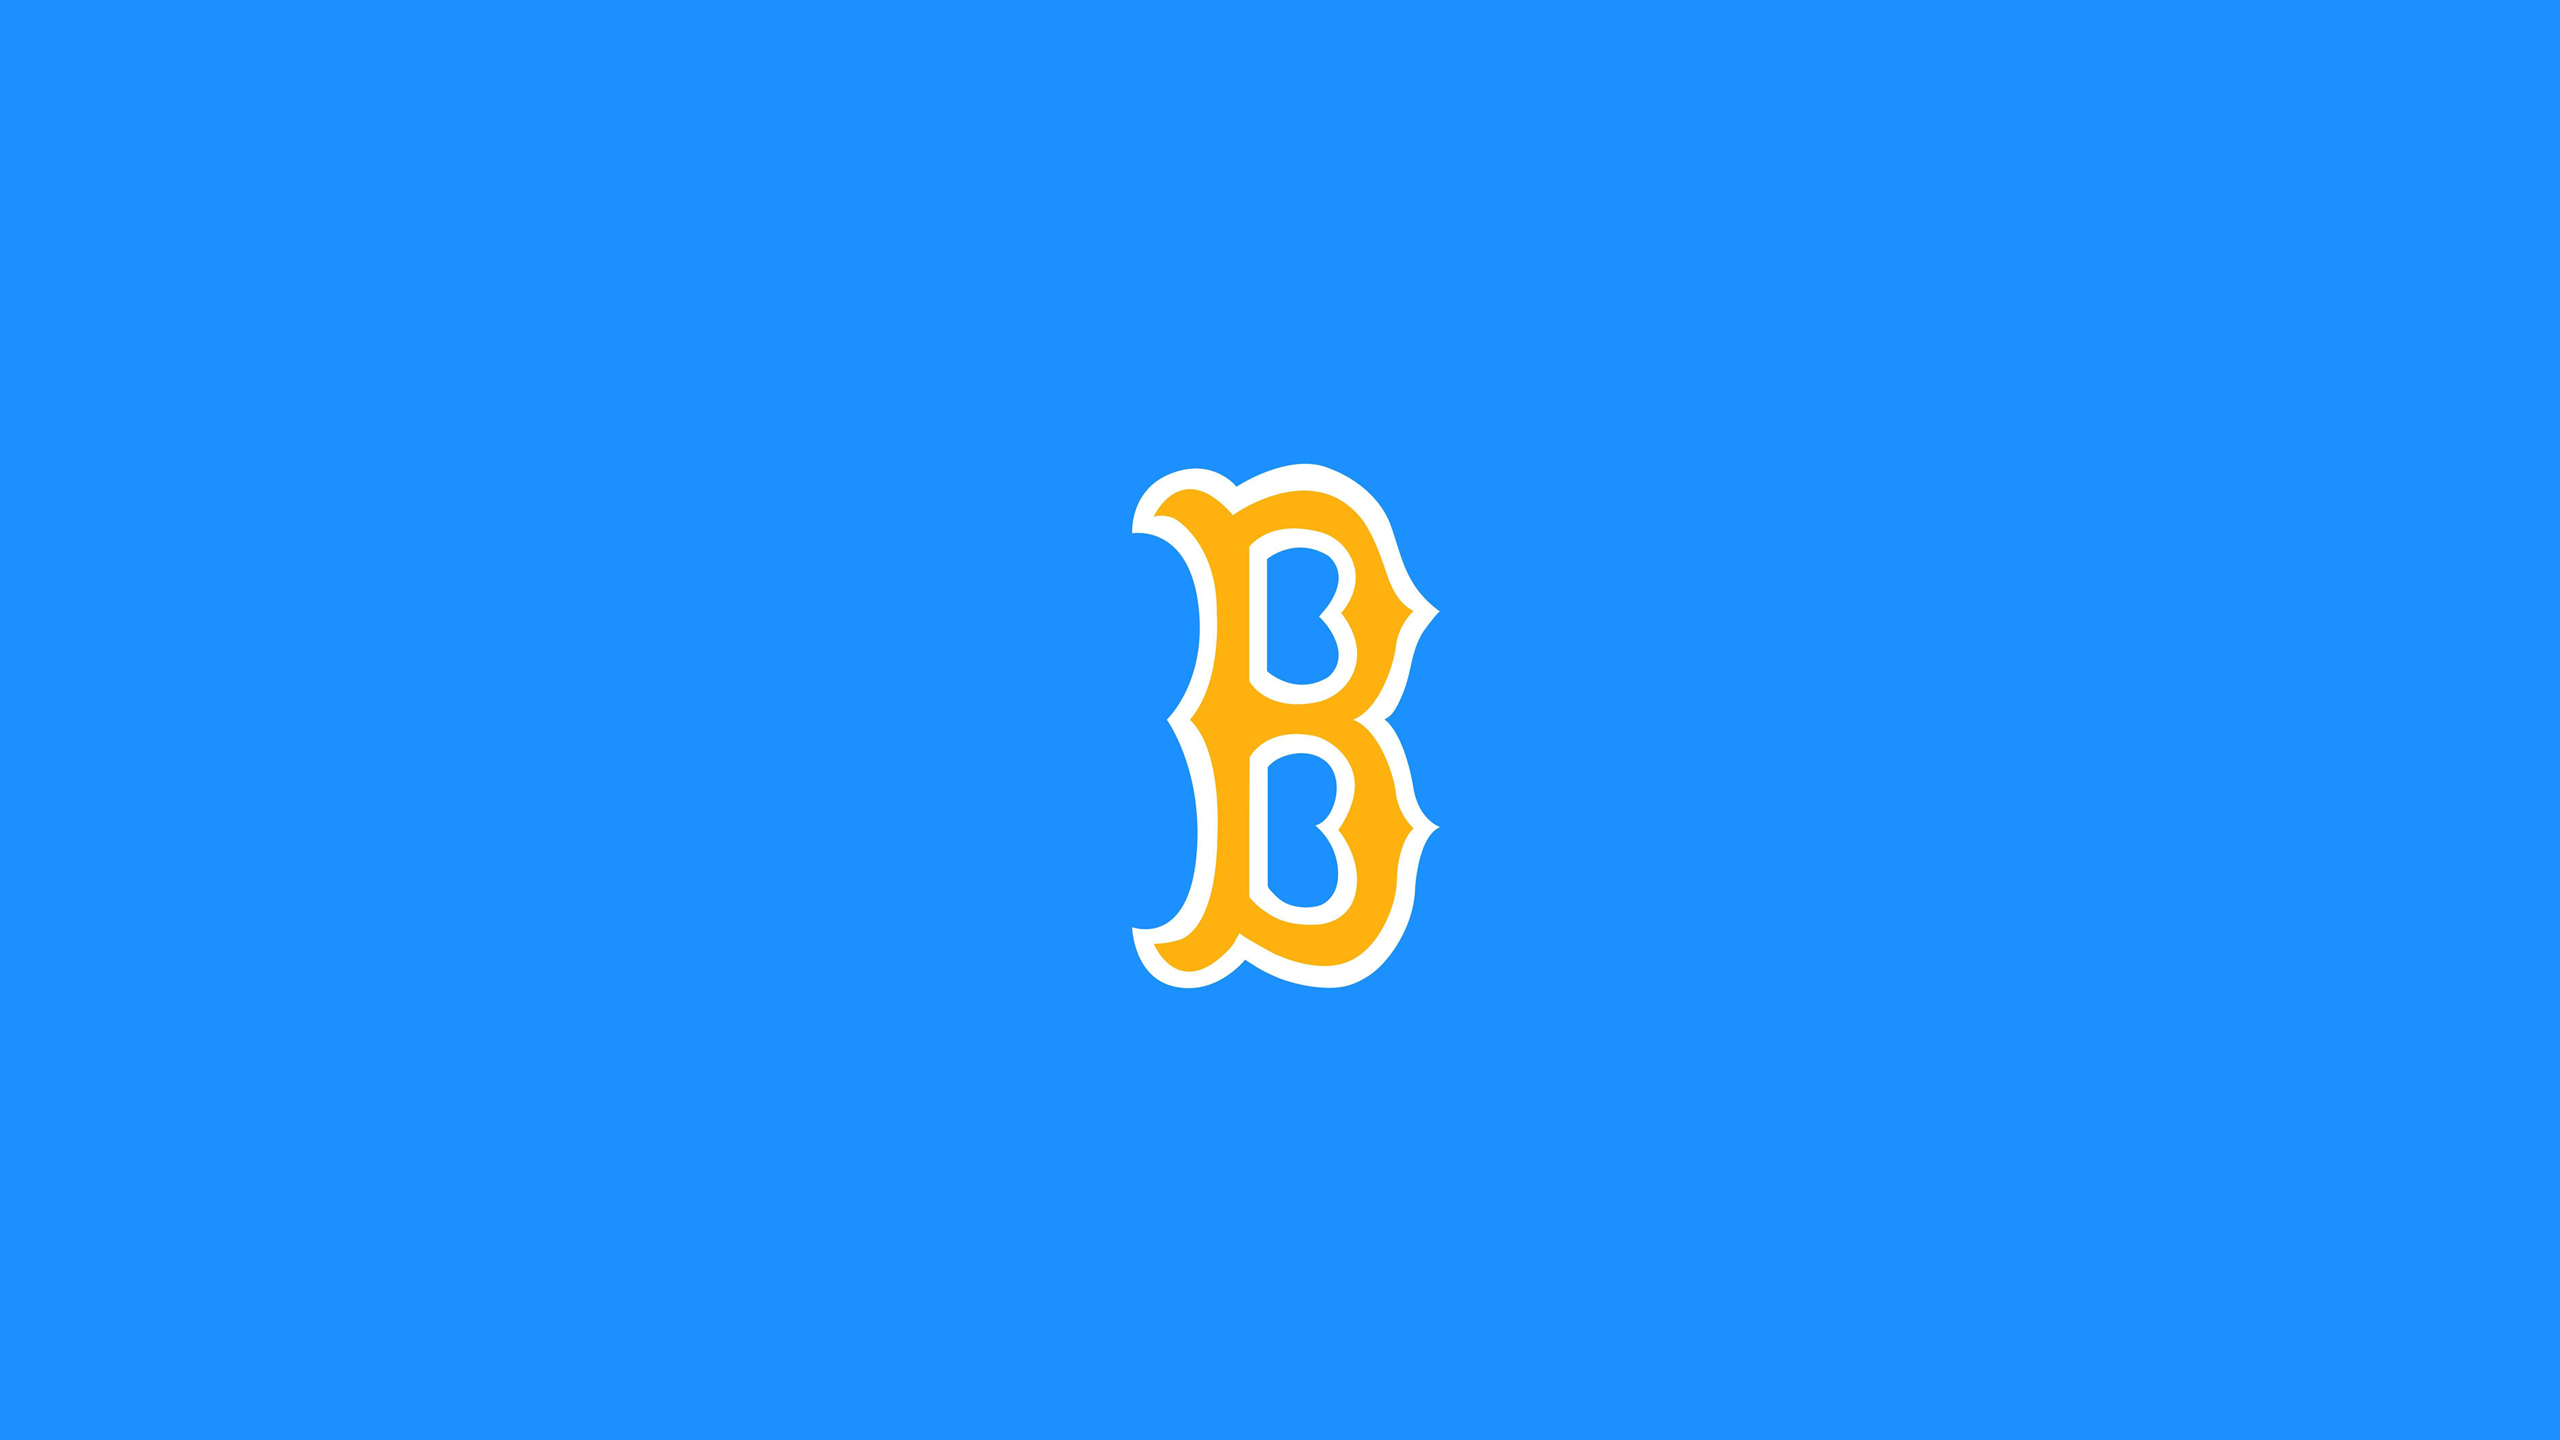 UCLA Bruins (Baseball)